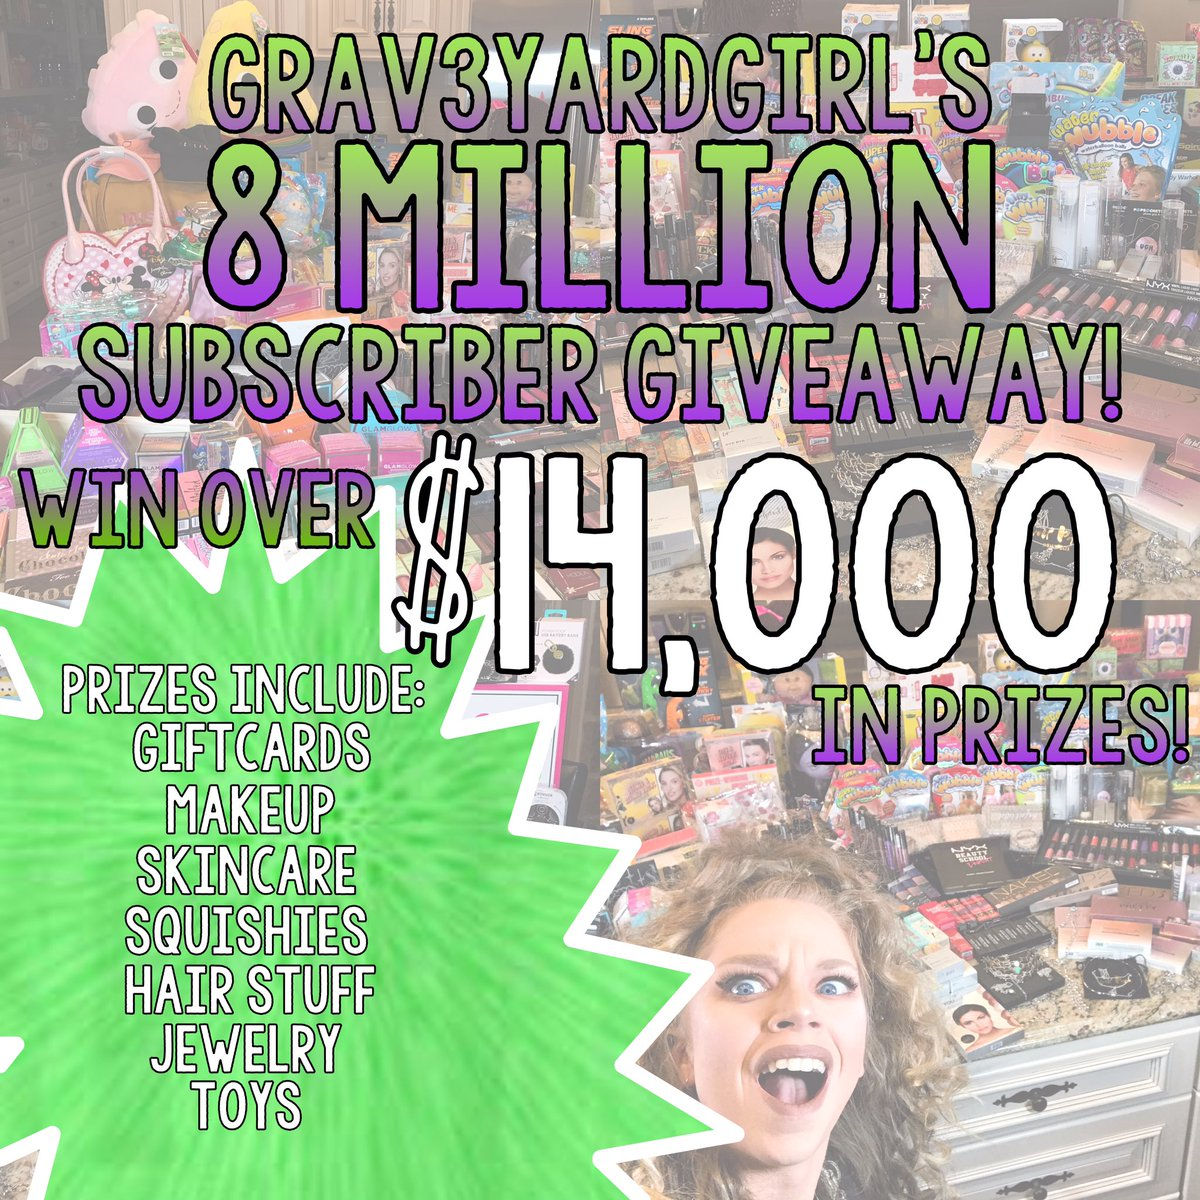 #grav3yardgirl8MILLIONgiveaway enter for the chance to win over $14,000 in prizes! https://t.co/6CBF0dwZxc https://t.co/2C1hBCh6AK